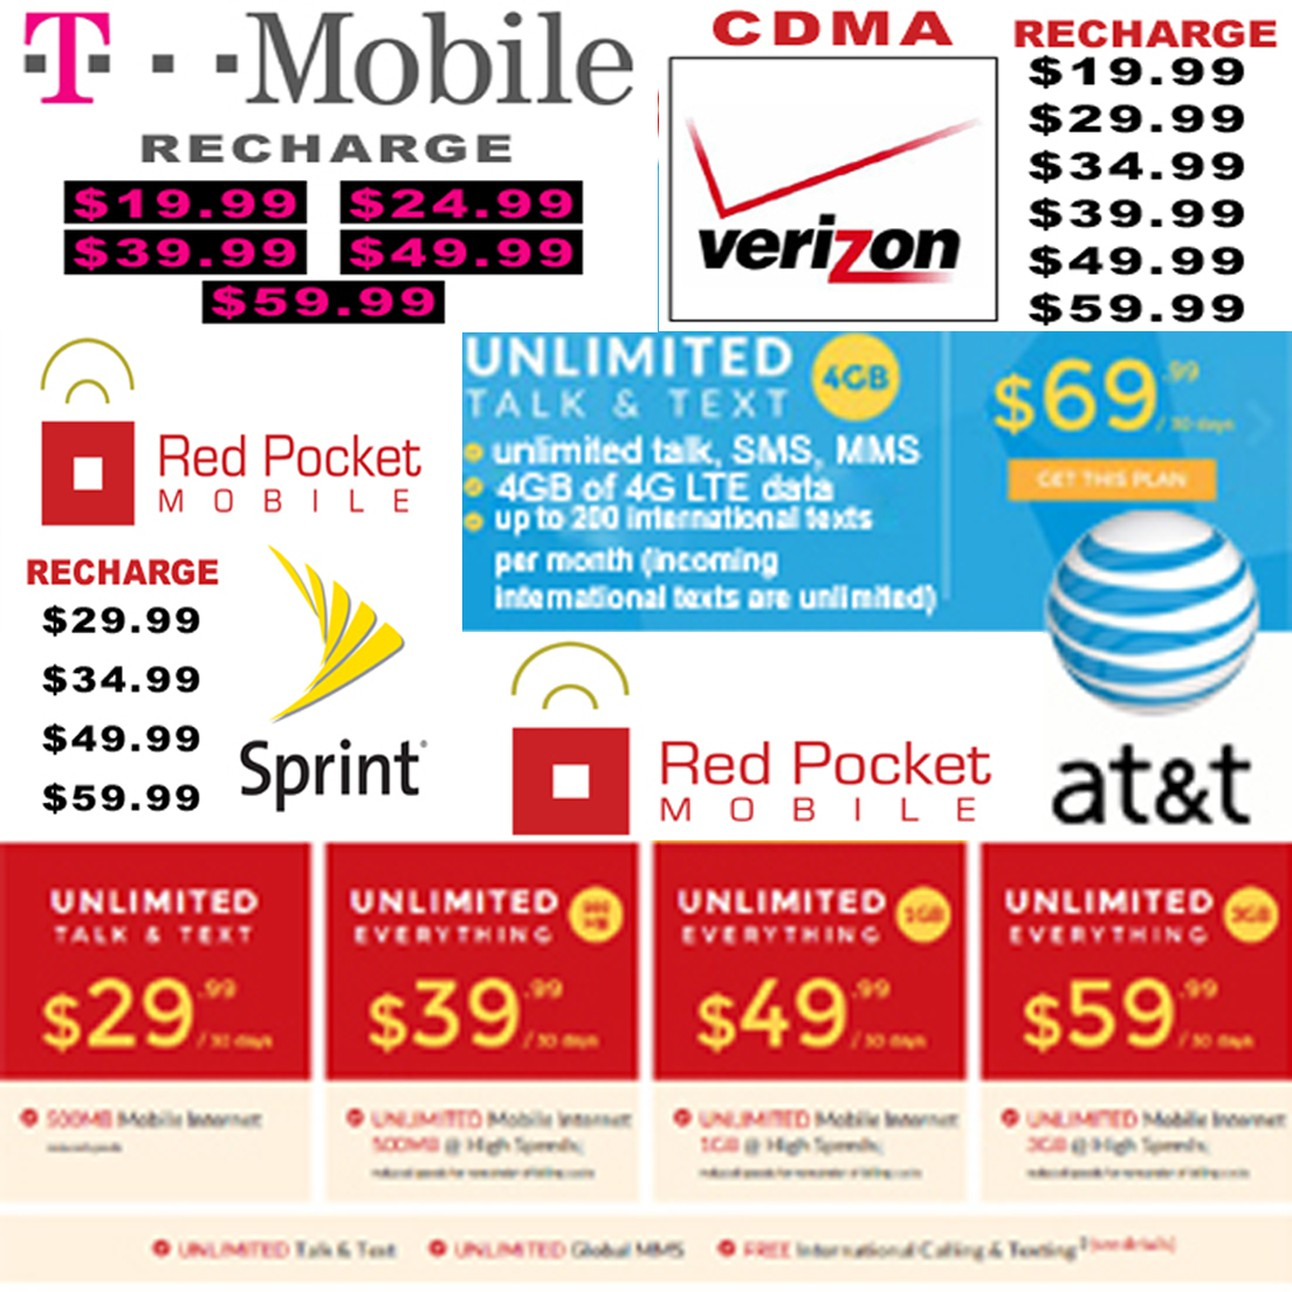 Red Pocket AT&T, T-Mobile, Sprint and Verizon